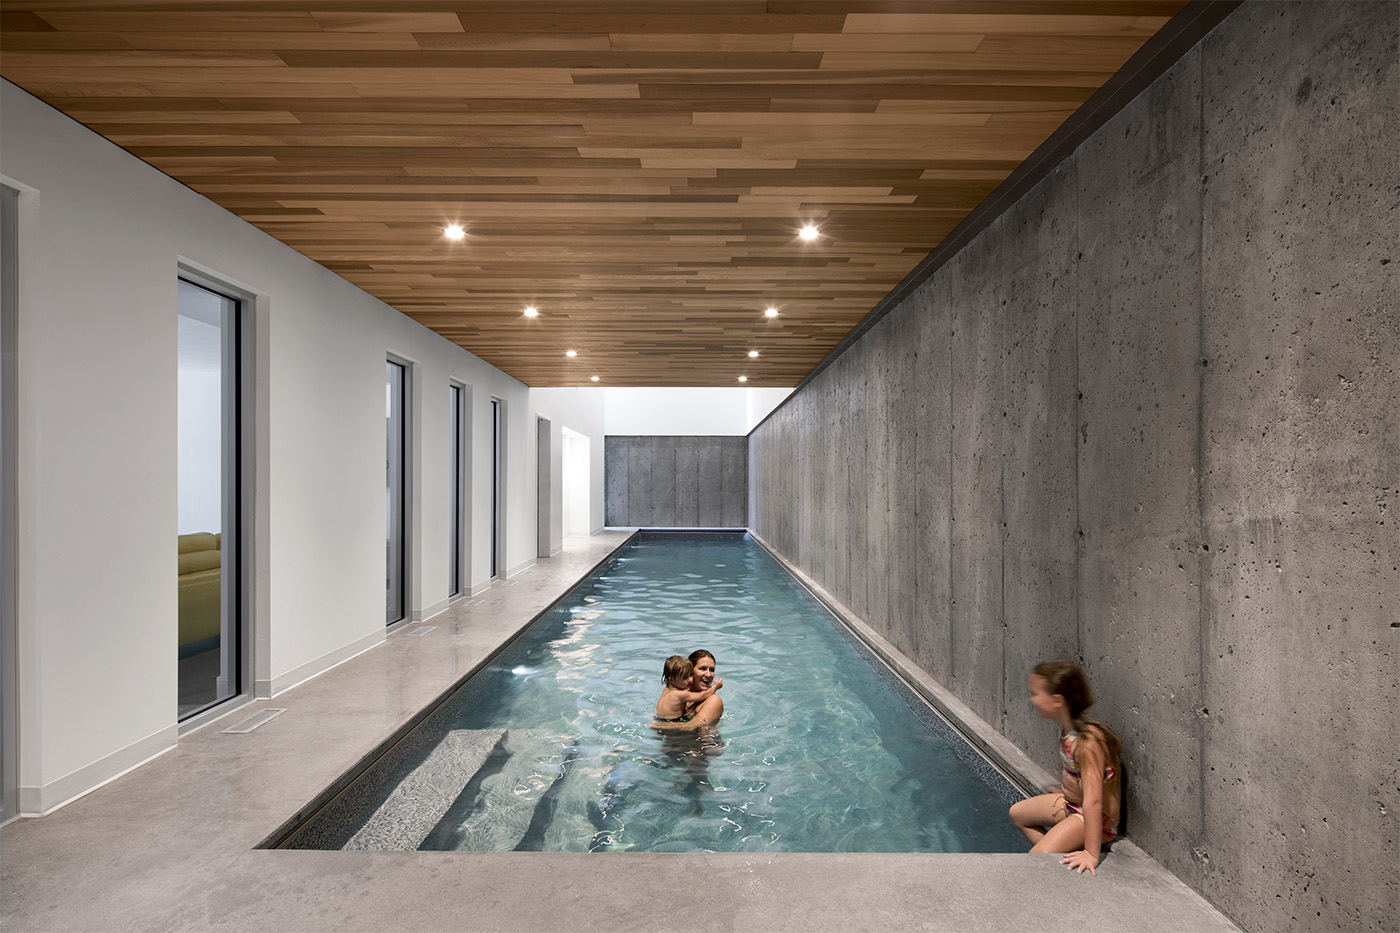 Indoor swimming pool with wooden roof and lighting